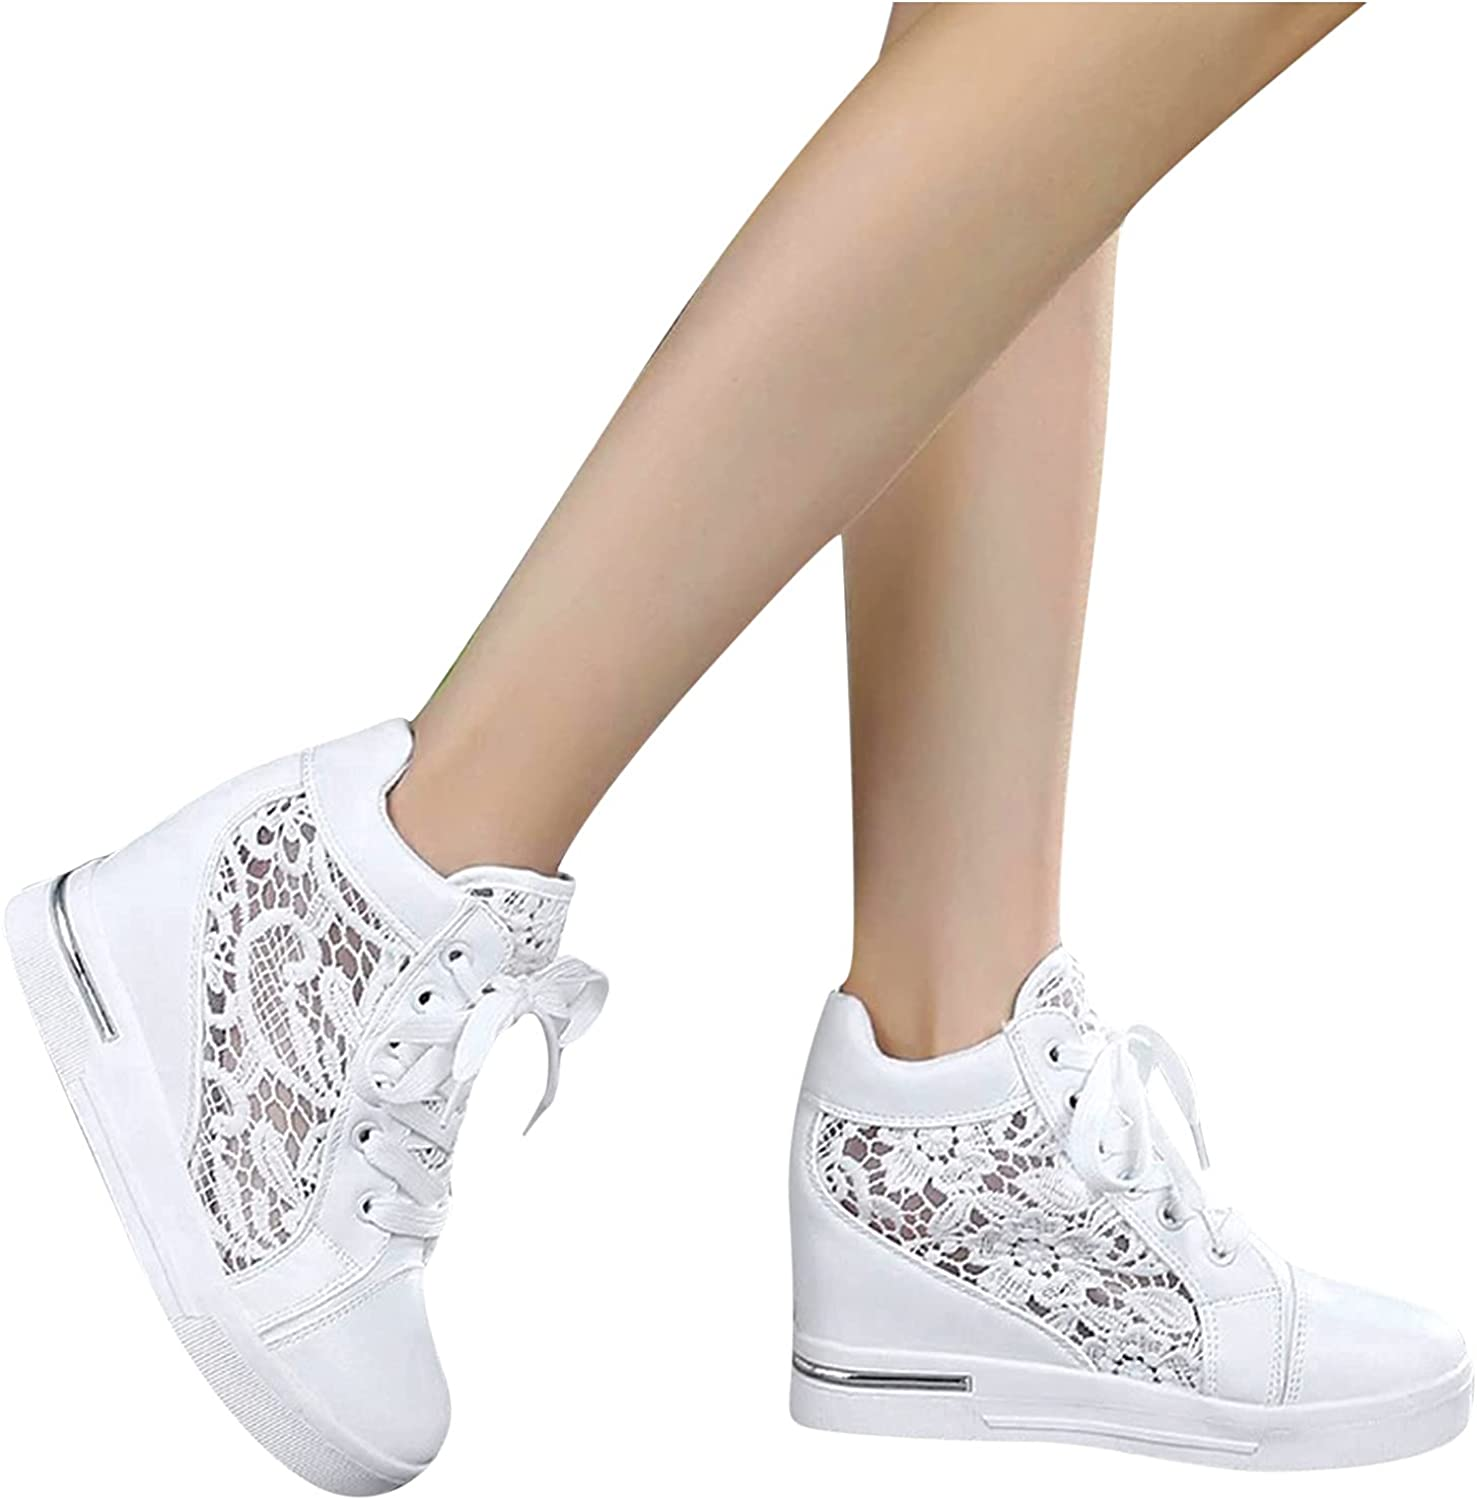 AODONG Sneakers for Women Walking Shoes Platform Ankle Wedges Running Sports Shoes Fashion Round Toe Slip On Shoes